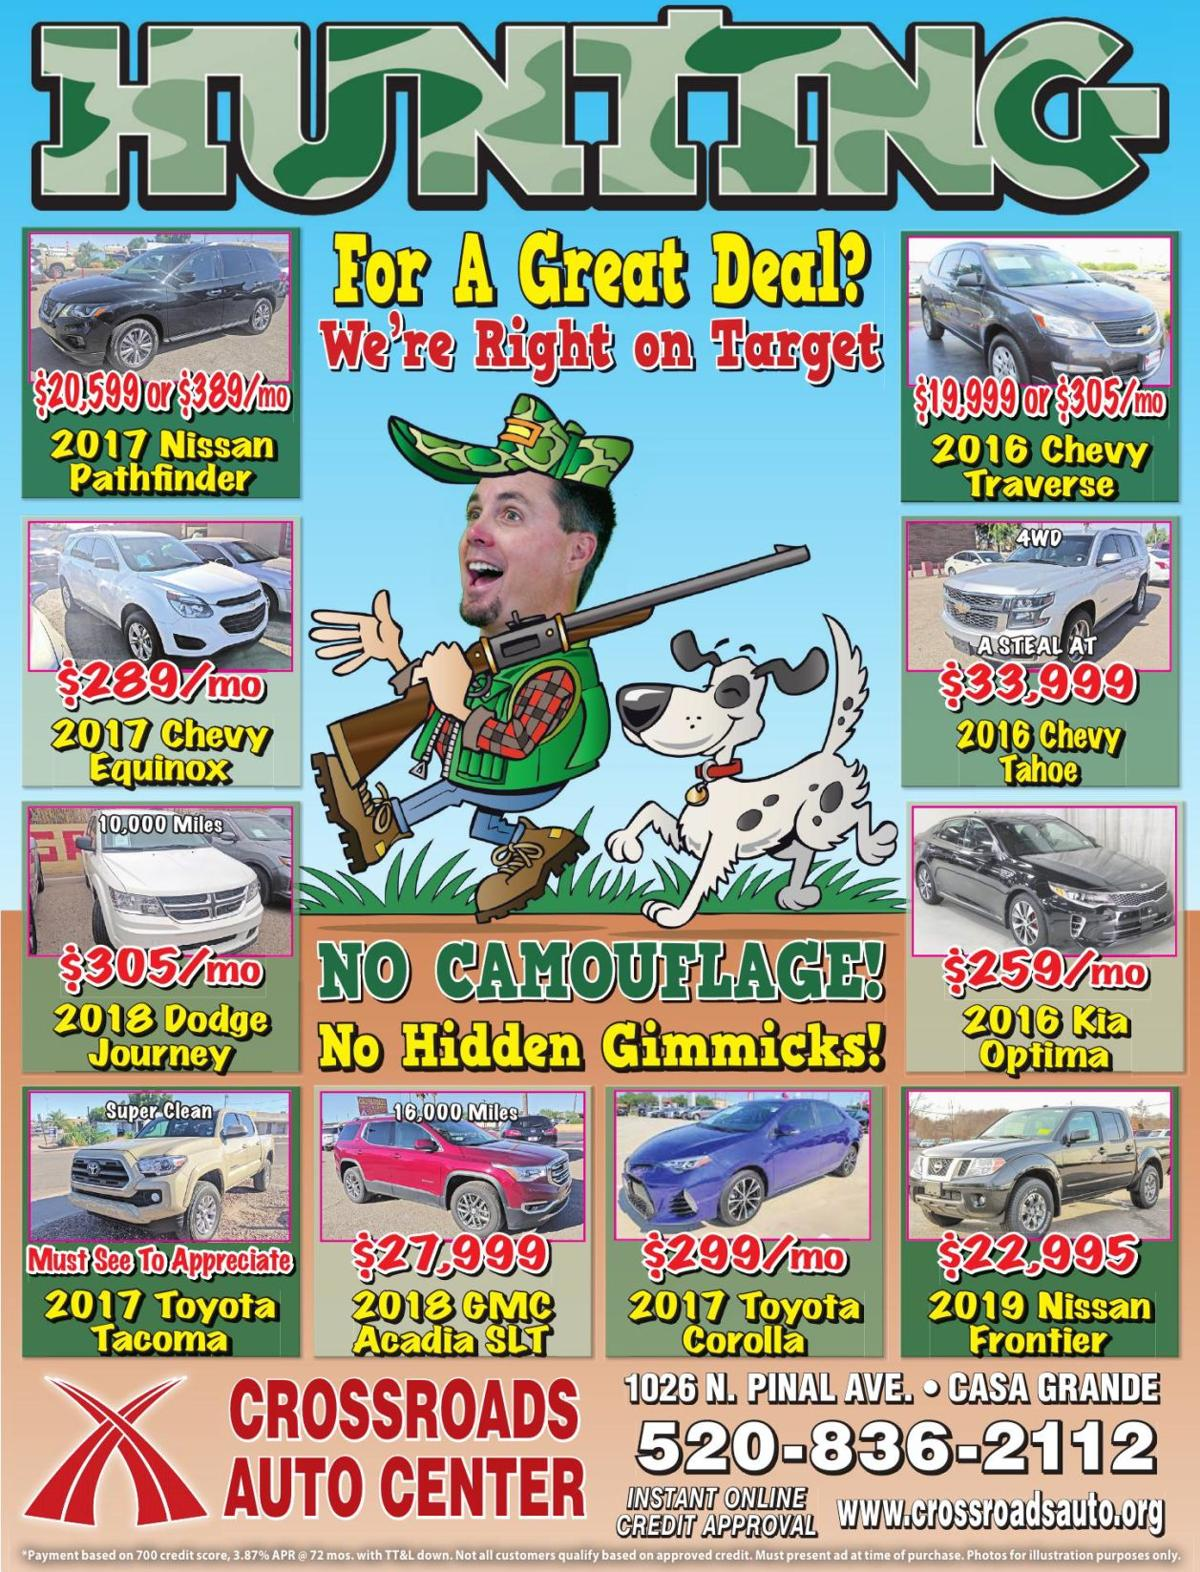 Crossroads Auto Center